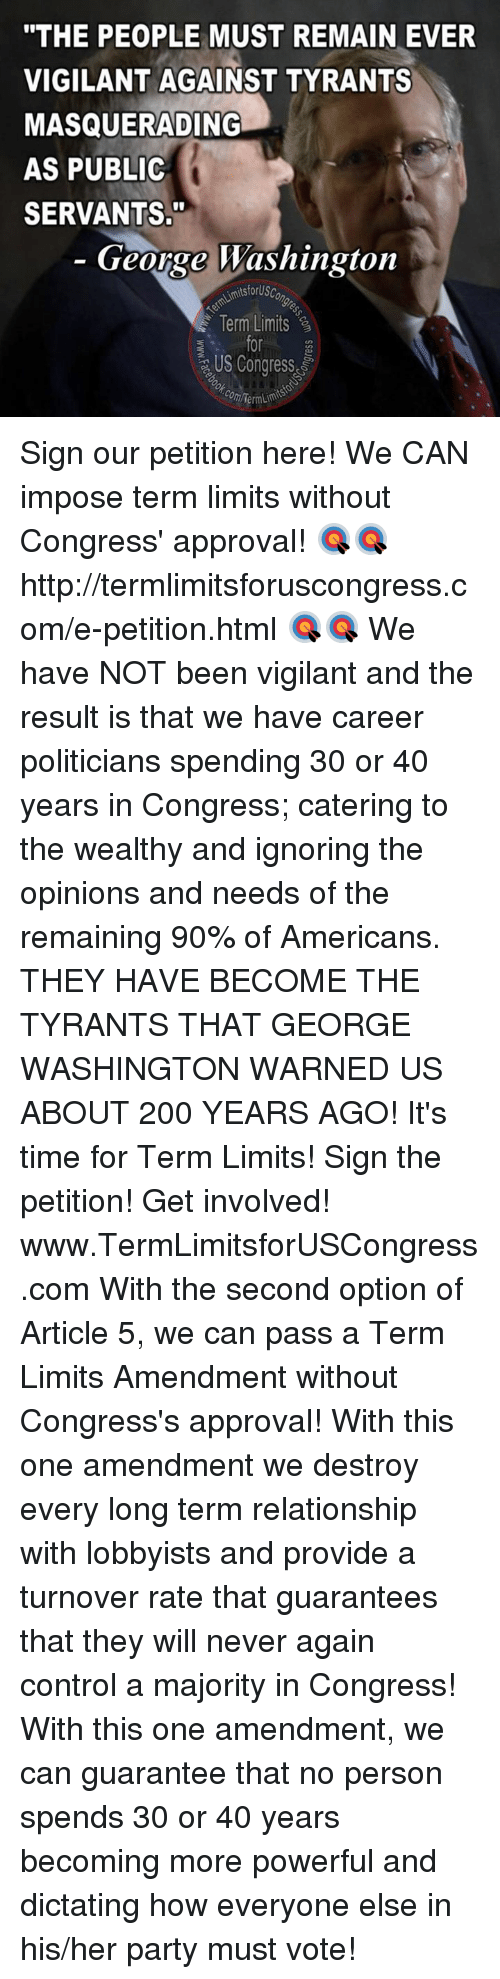 "Memes, George Washington, and 🤖: ""THE PEOPLE MUST REMAIN EVER  VIGILANT AGAINST TYRANTS  MASQUERADING  AS PUBLIC  SERVANTS.""  George Washington  AimitsforUsc  Term Limits  US Congress  com Term Sign our petition here! We CAN impose term limits without Congress' approval! 🎯🎯http://termlimitsforuscongress.com/e-petition.html 🎯🎯  We have NOT been vigilant and the result is that we have career politicians spending 30 or 40 years in Congress; catering to the wealthy and ignoring the opinions and needs of the remaining 90% of Americans.  THEY HAVE BECOME THE TYRANTS THAT GEORGE WASHINGTON WARNED US ABOUT 200 YEARS AGO!  It's time for Term Limits! Sign the petition! Get involved! www.TermLimitsforUSCongress.com  With the second option of Article 5, we can pass a Term Limits Amendment without Congress's approval! With this one amendment we destroy every long term relationship with lobbyists and provide a turnover rate that guarantees that they will never again control a majority in Congress! With this one amendment, we can guarantee that no person spends 30 or 40 years becoming more powerful and dictating how everyone else in his/her party must vote!"